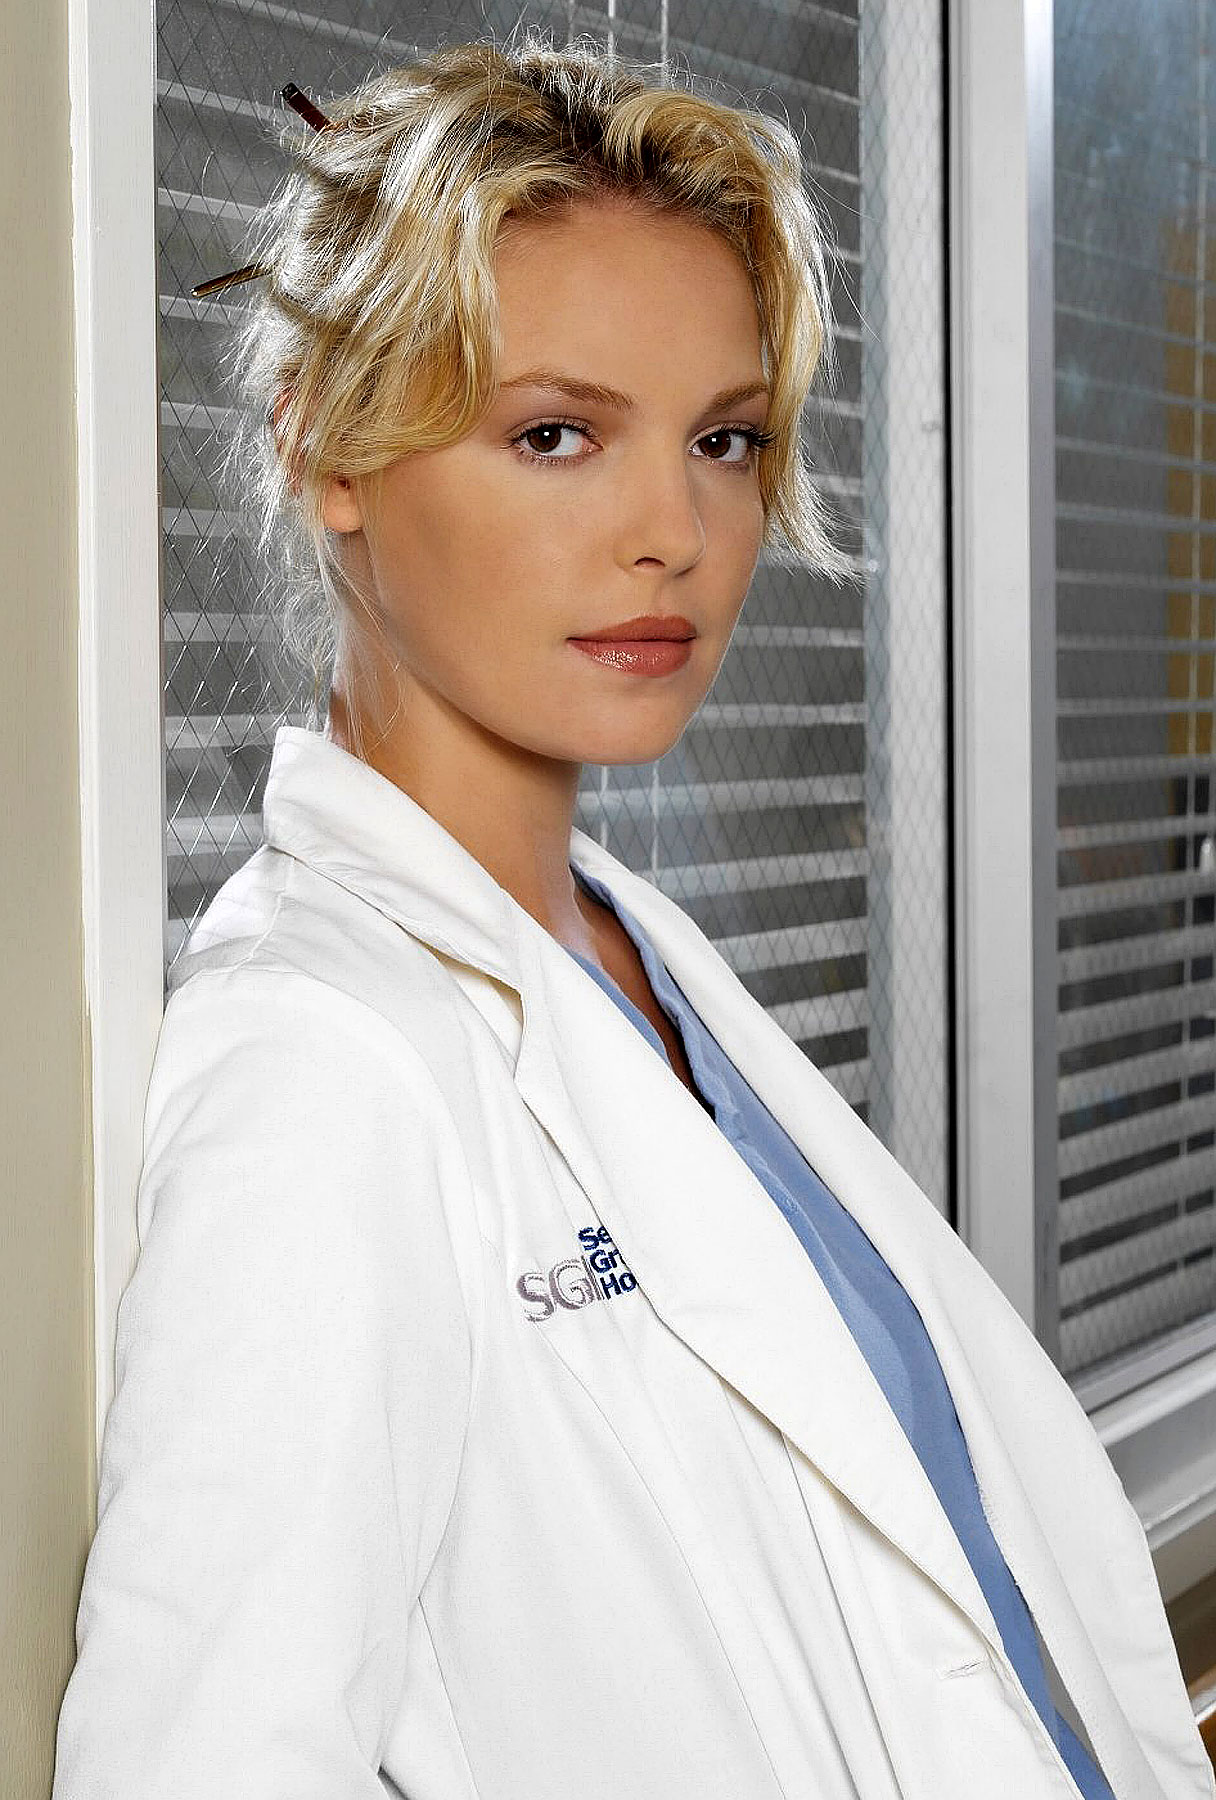 Katherine Heigl Is Taking A Leave Of Absence